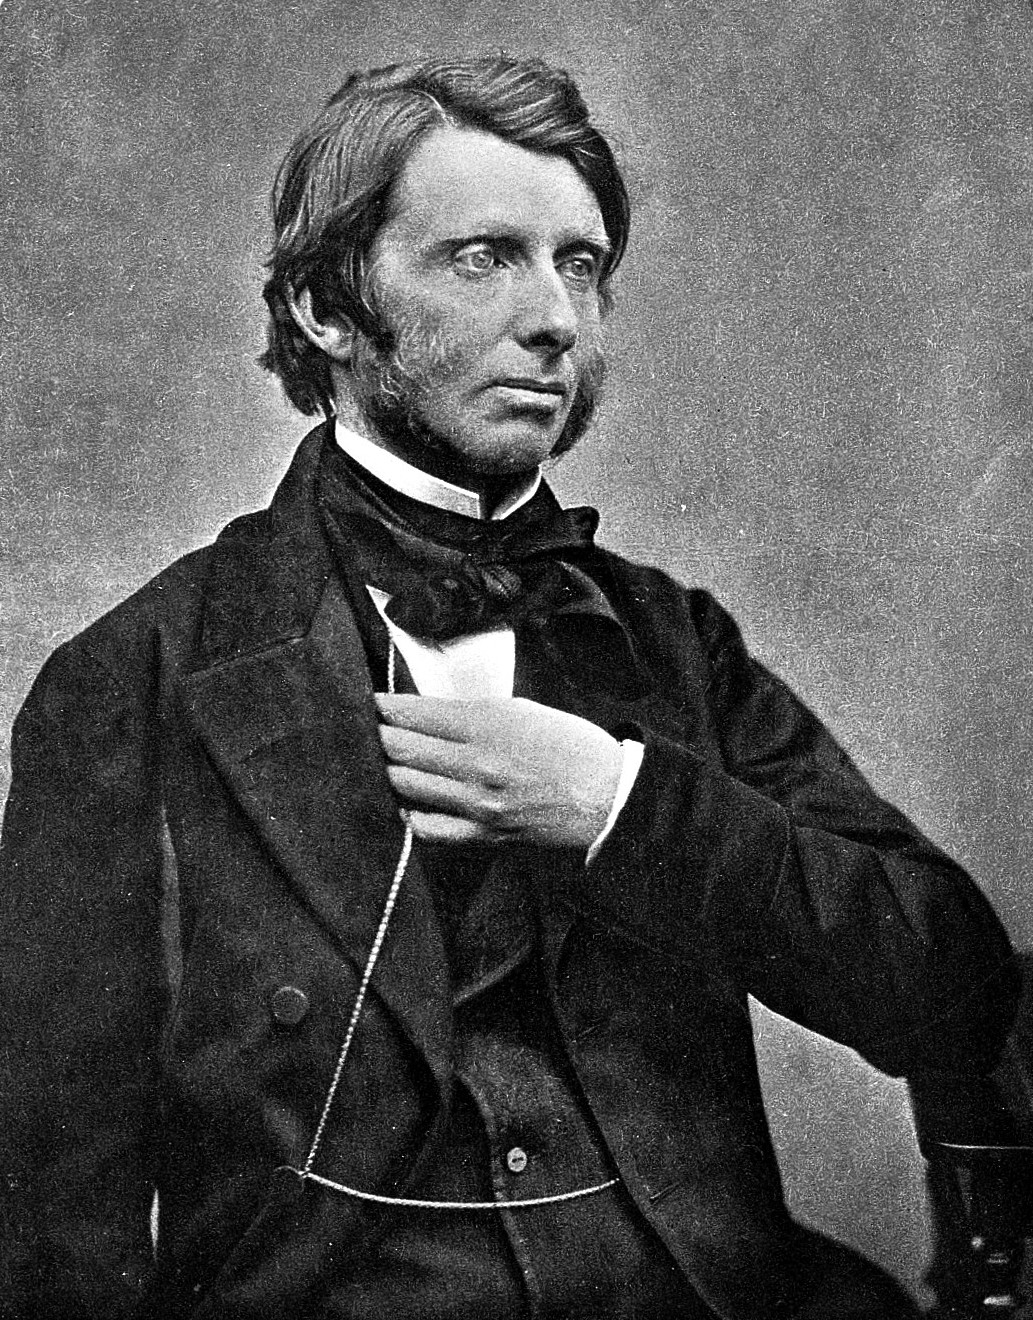 """""""File:Portrait of John Ruskin Wellcome L0002304 (cropped).jpg"""" is licensed with CC BY 4.0. To view a copy of this license, visit https://creativecommons.org/licenses/by/4.0"""